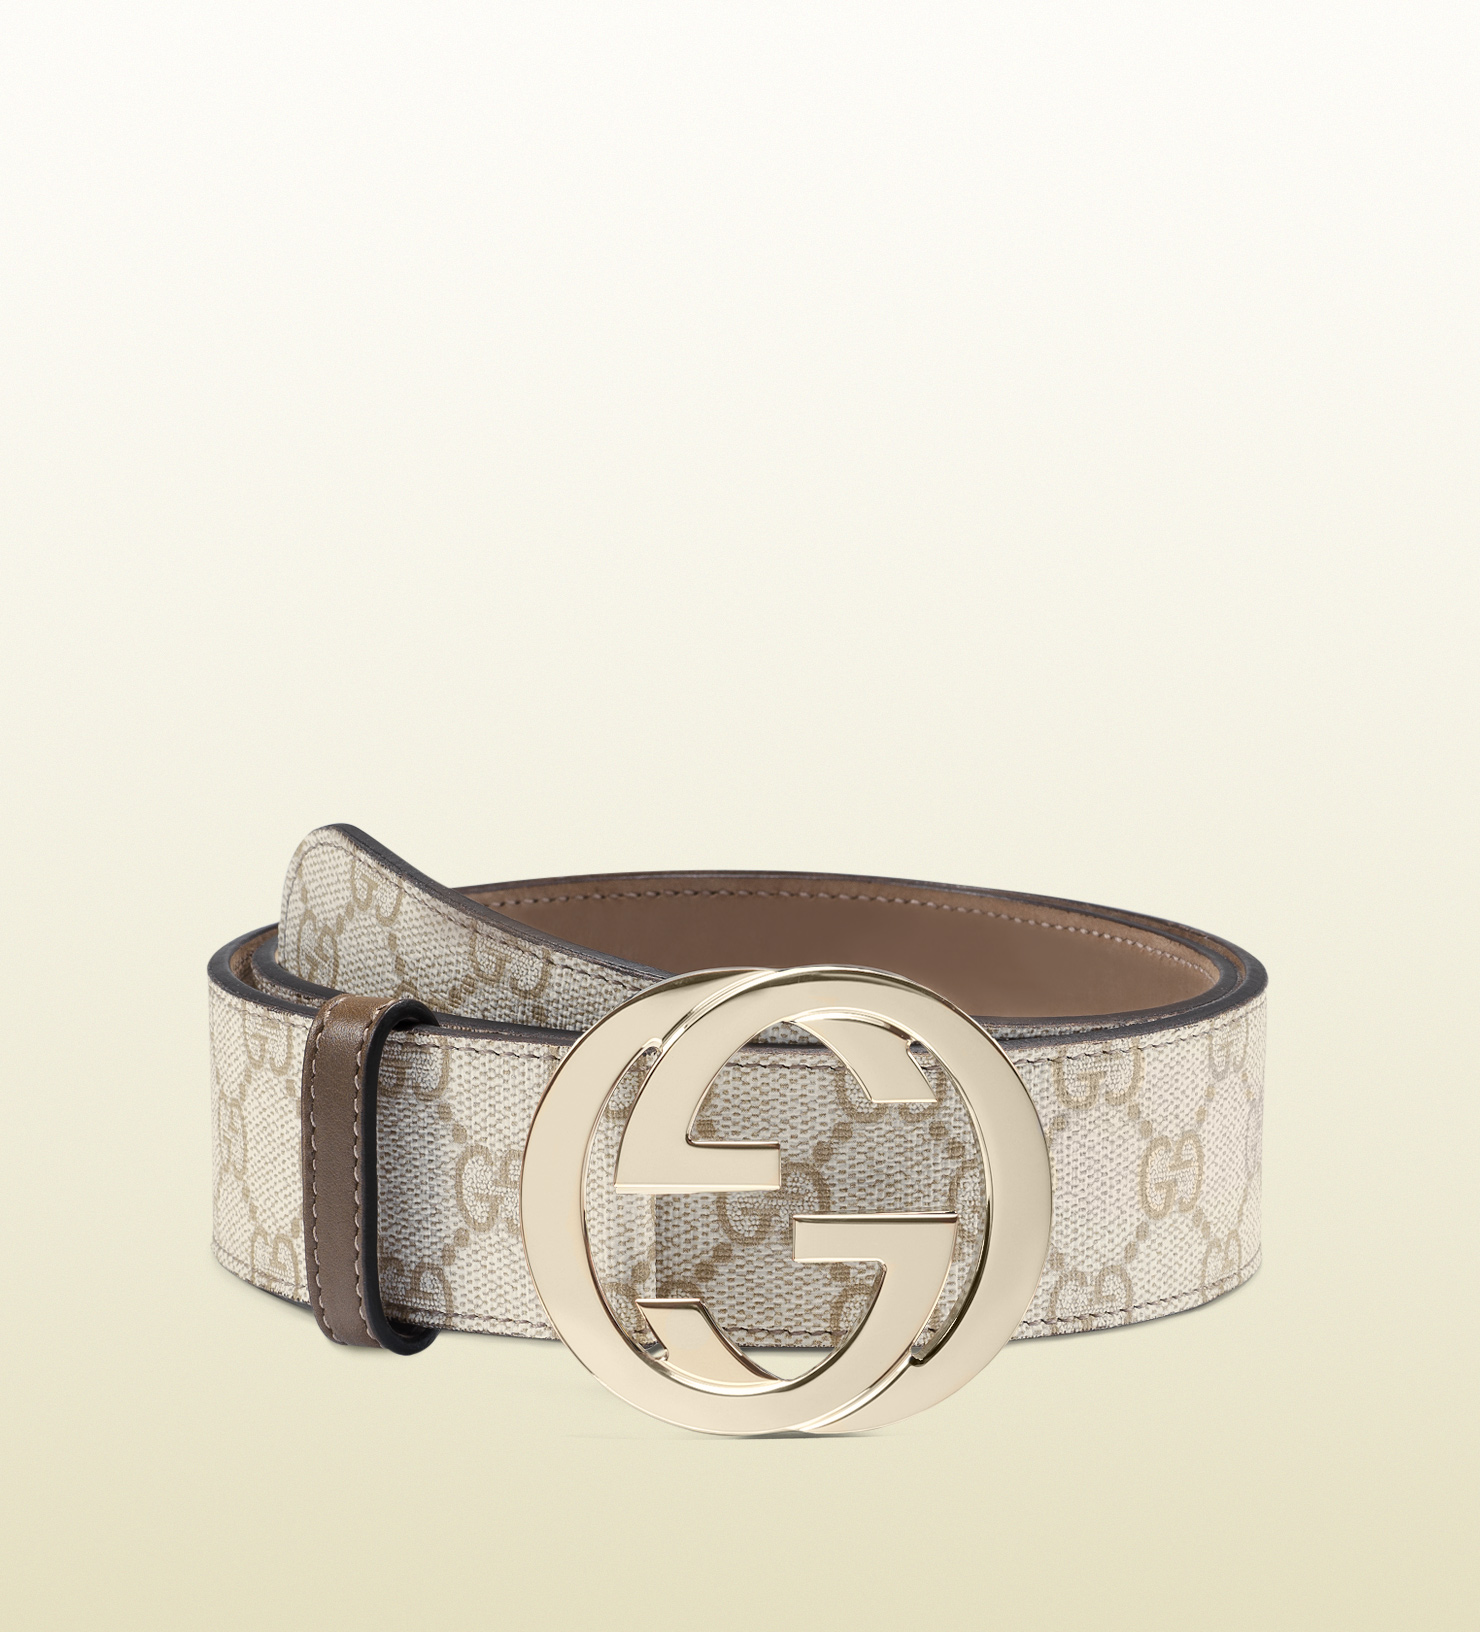 Gucci Gg Supreme Canvas Belt with Interlocking G Buckle in ...